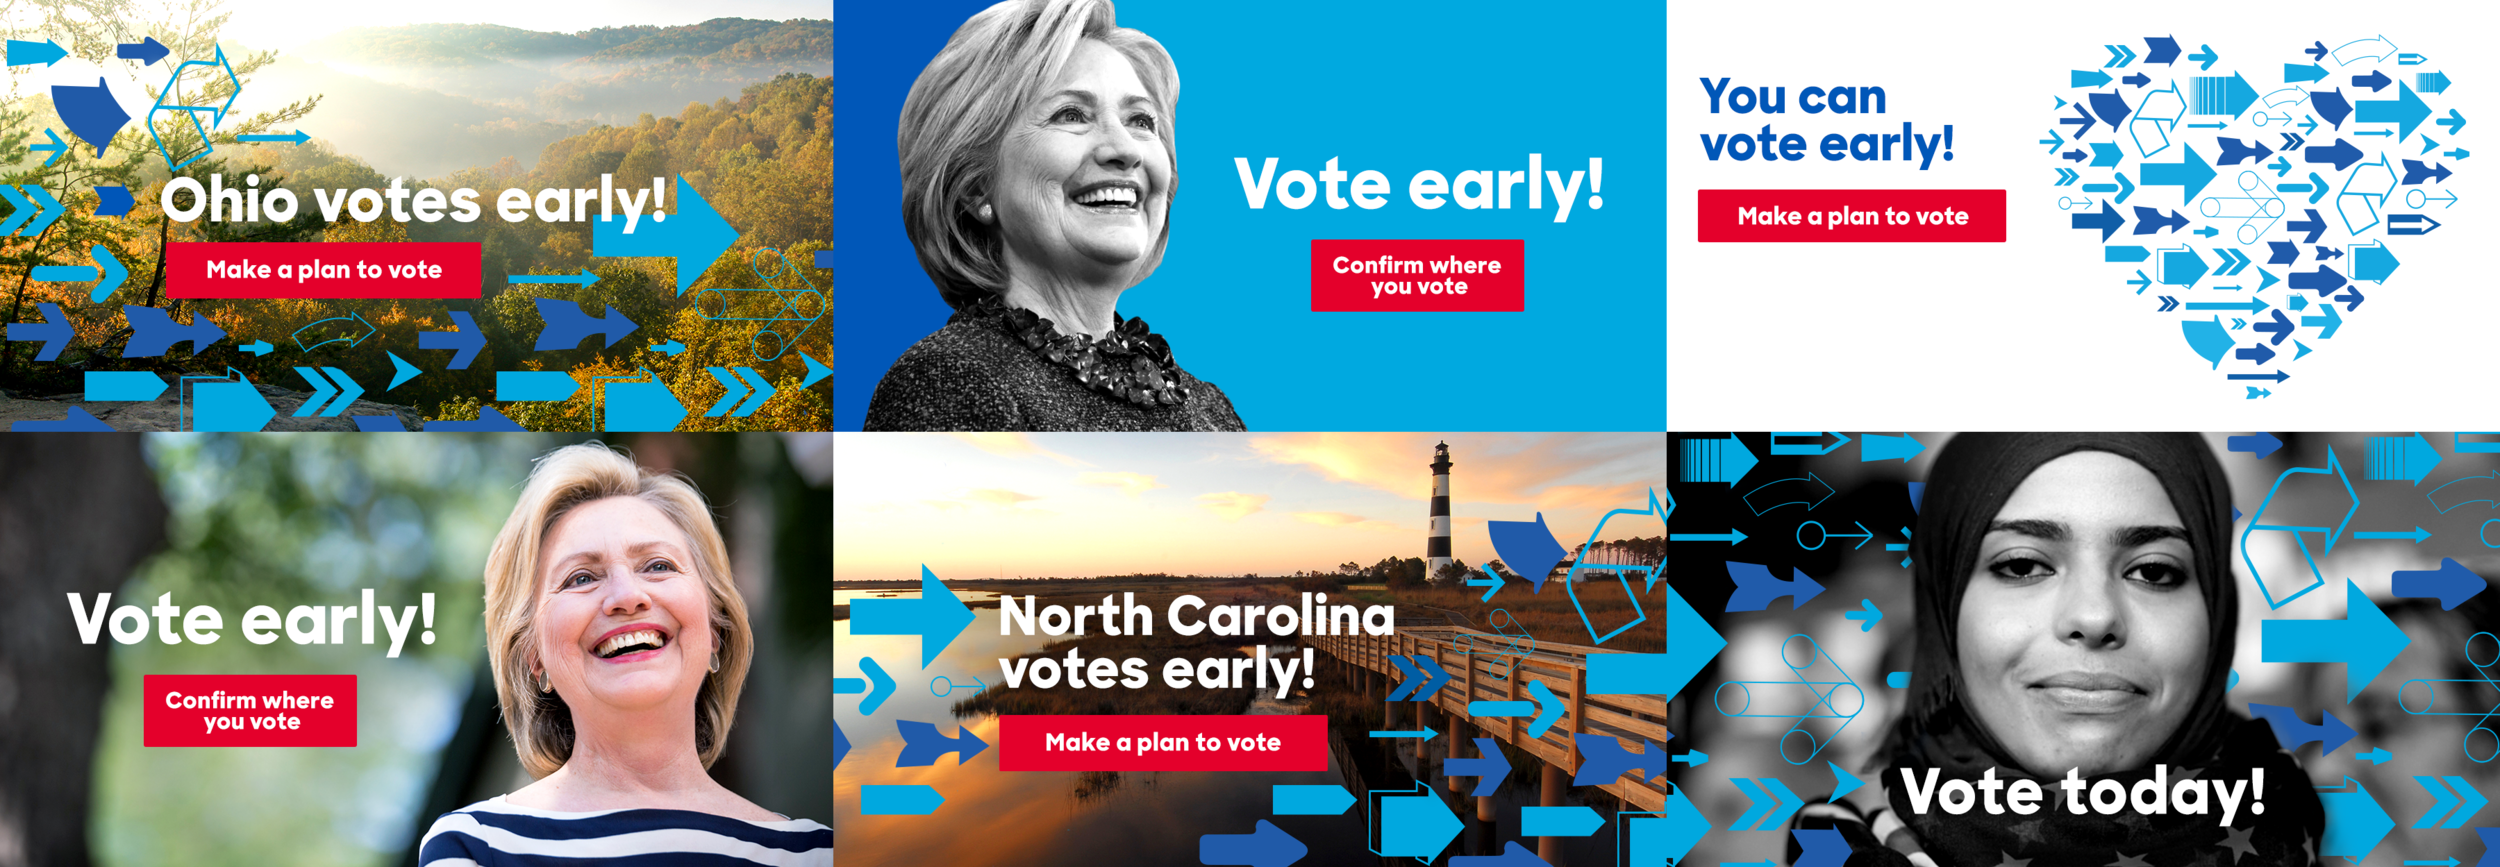 Early voting Facebook and Twitter ads